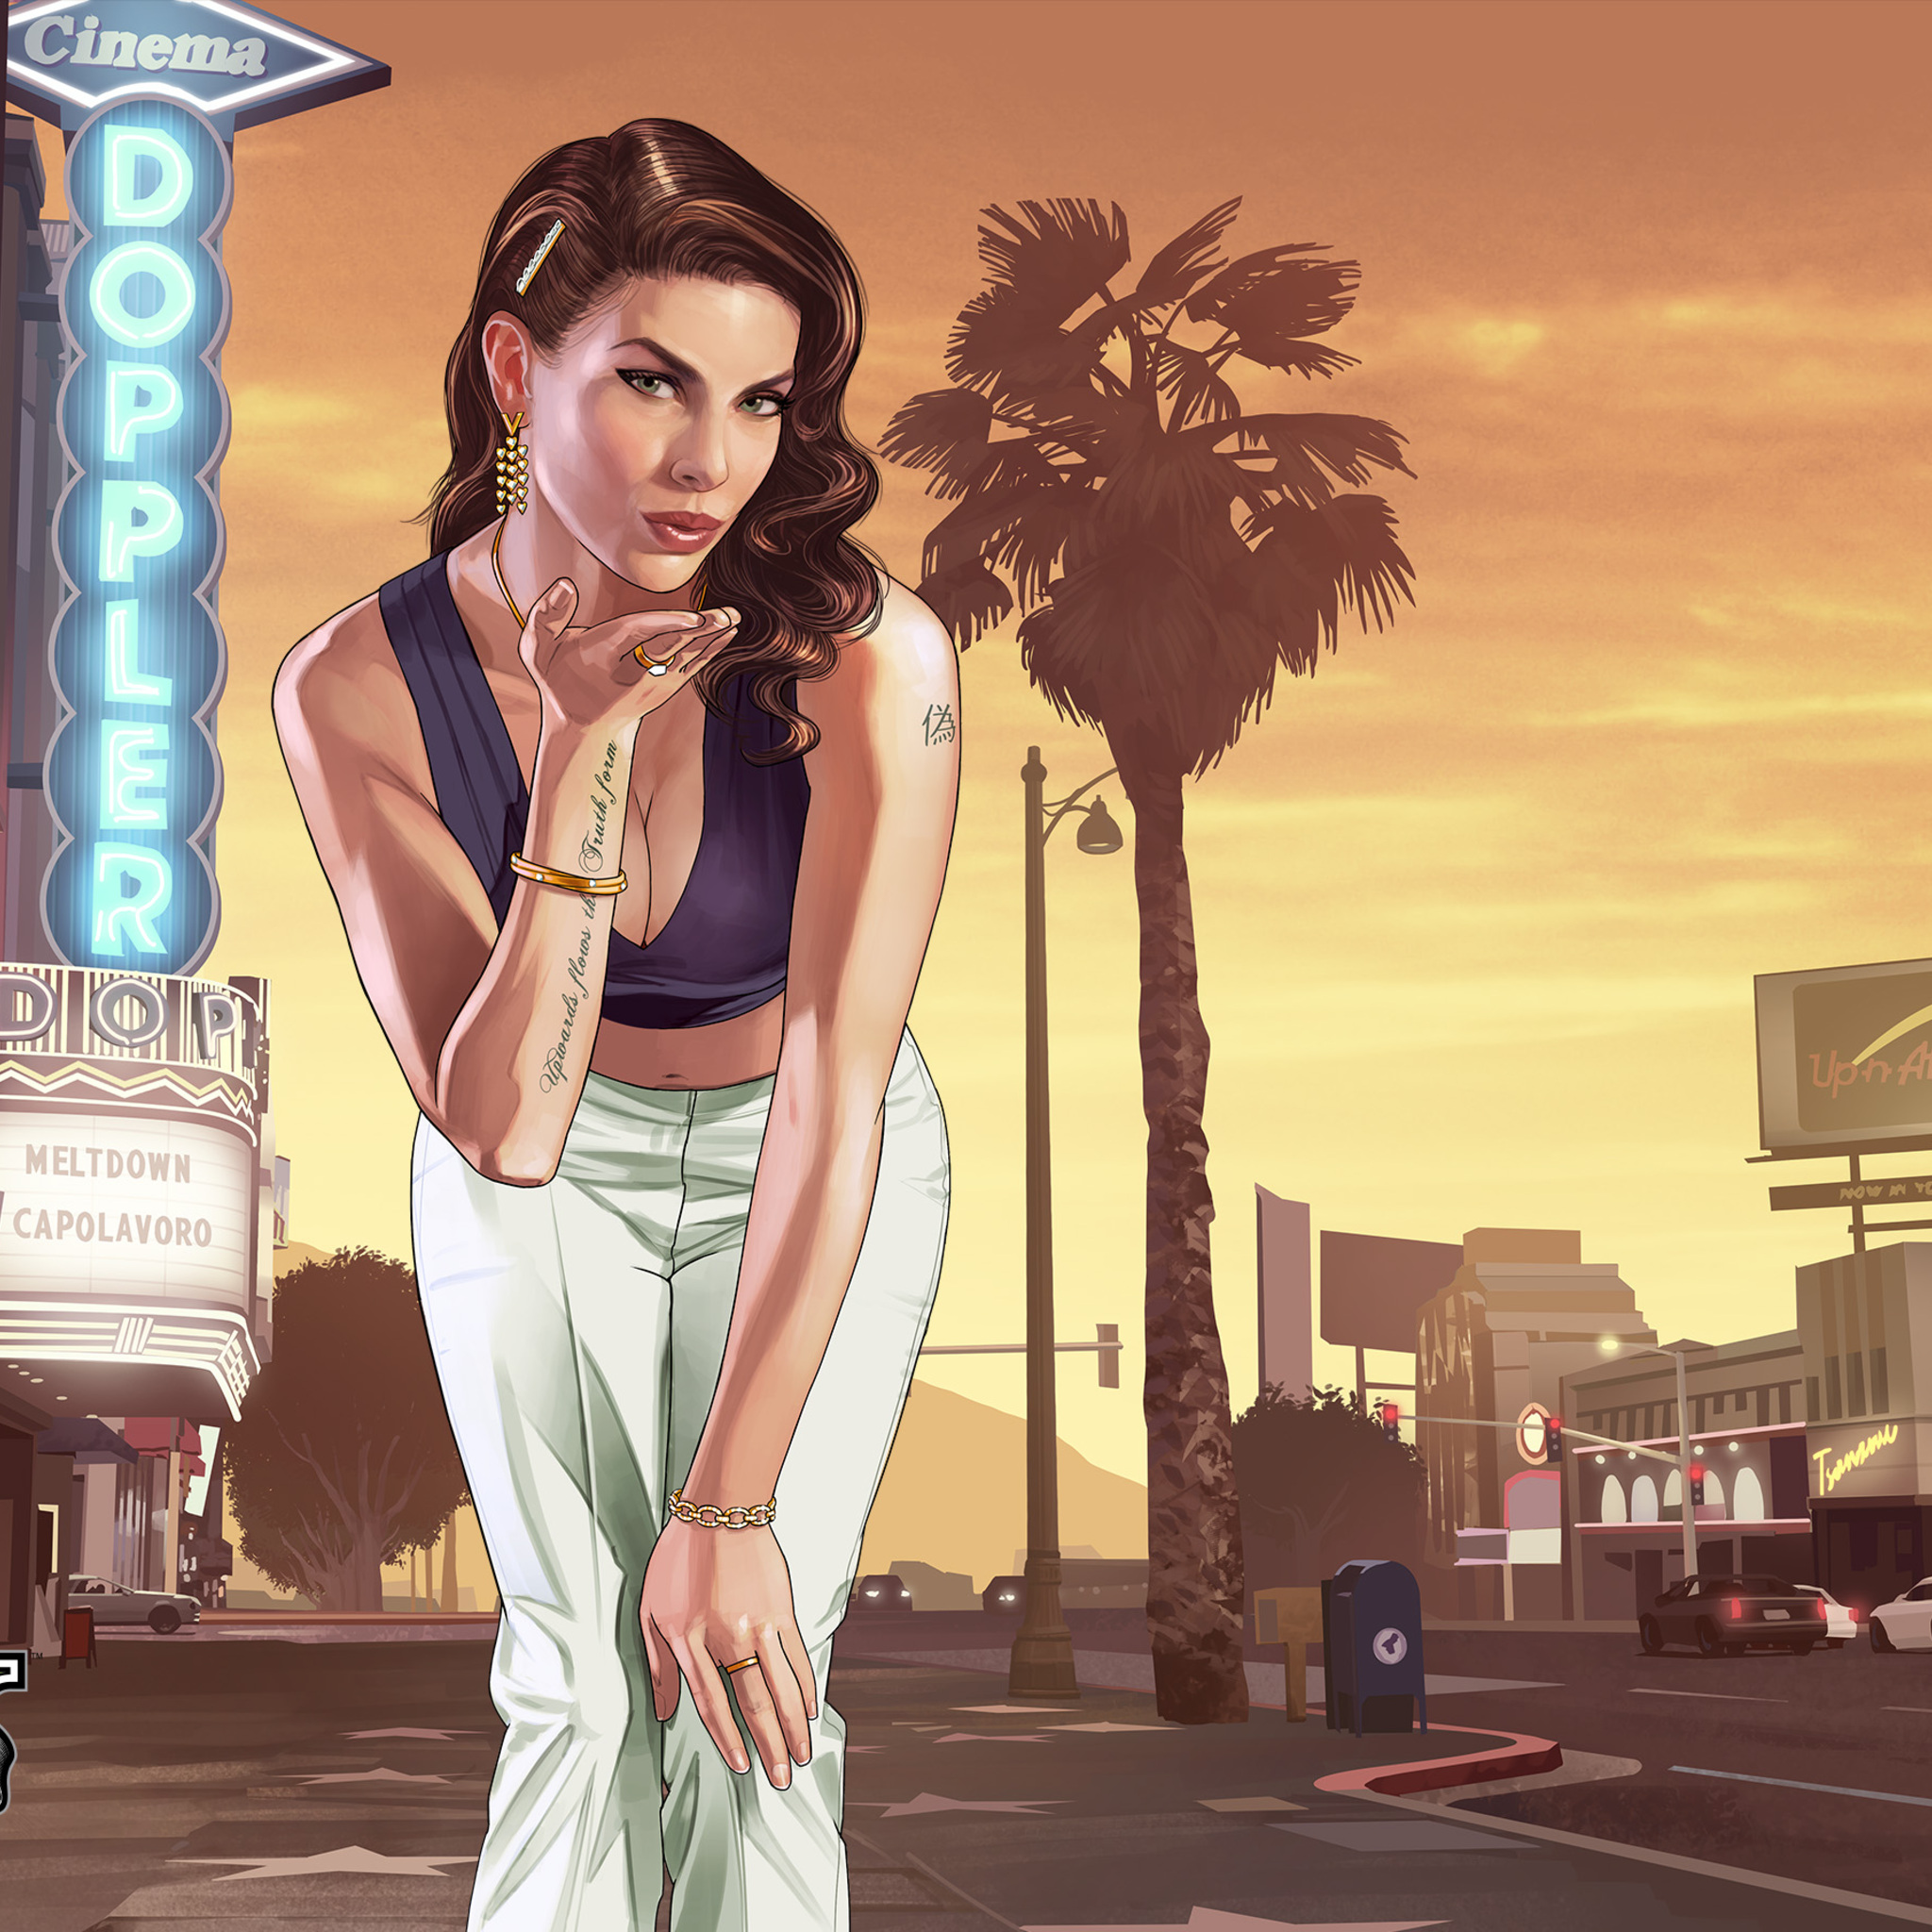 2048x2048 Gta 5 Loading Girl Ipad Air HD 4k Wallpapers